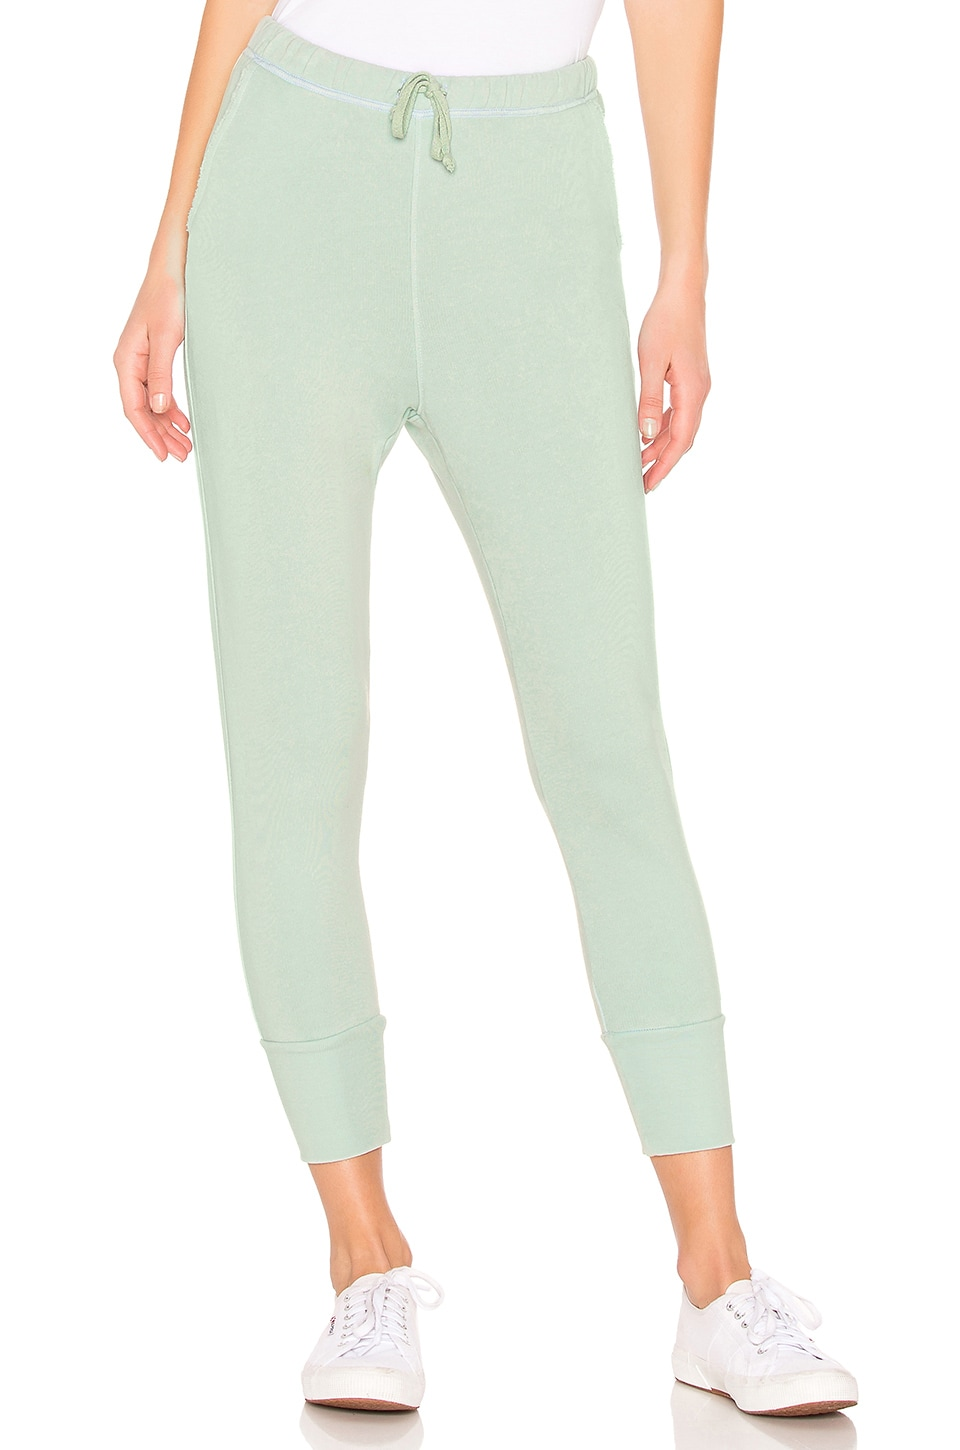 Frank & Eileen tee lab Jogger Sweatpant in Excite Mint